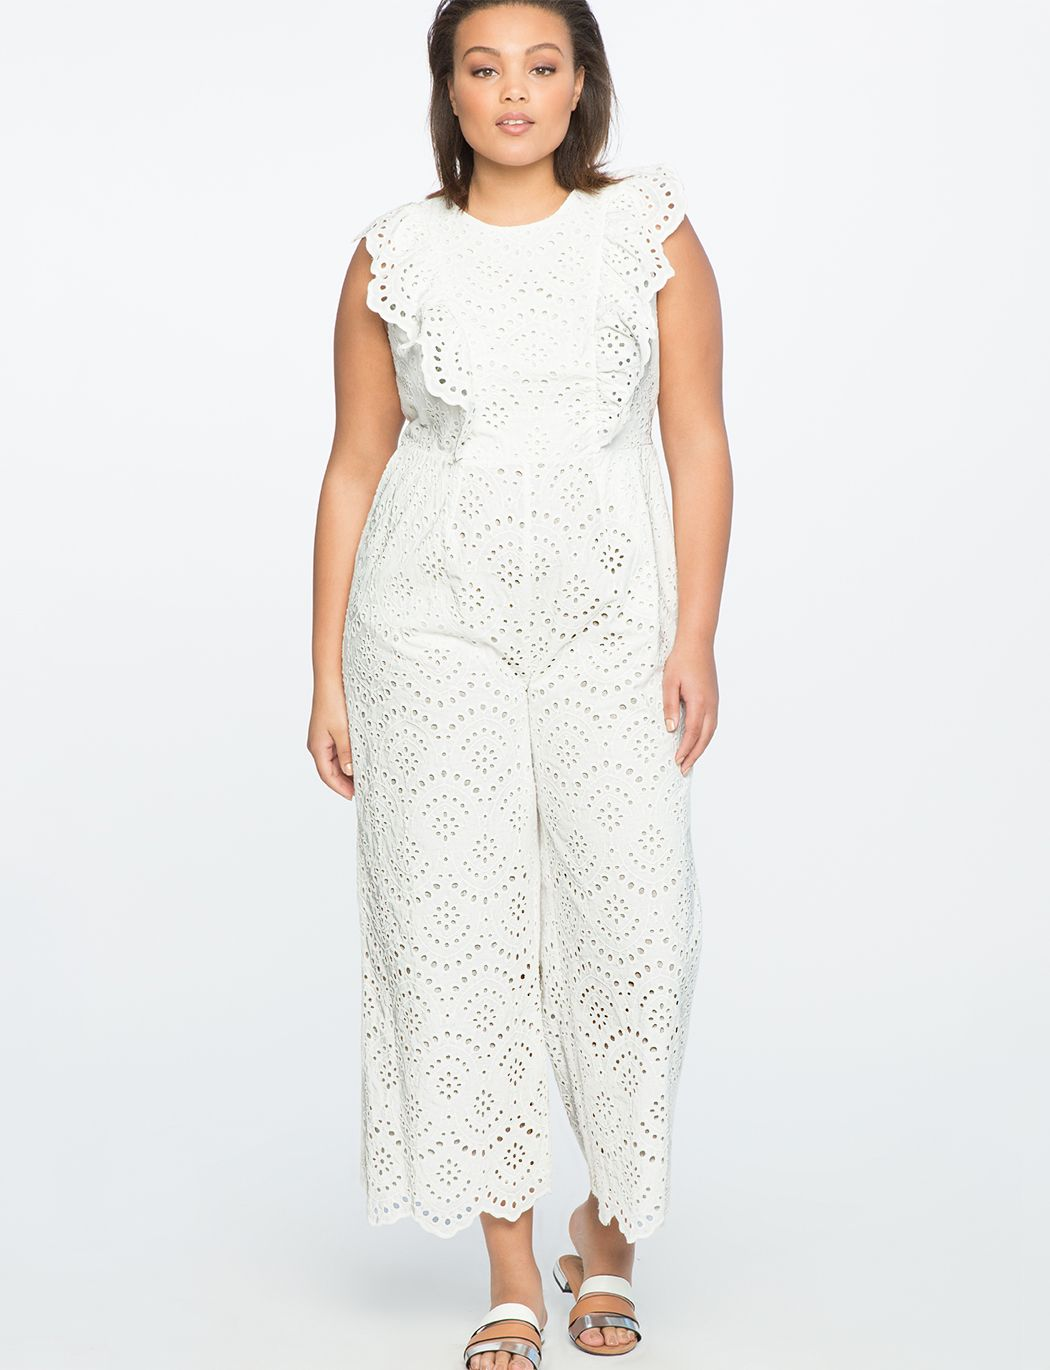 5036254b643 Looking for a cute jumpsuit  Check out of favorite 10 plus size finds for  you to rock this season!